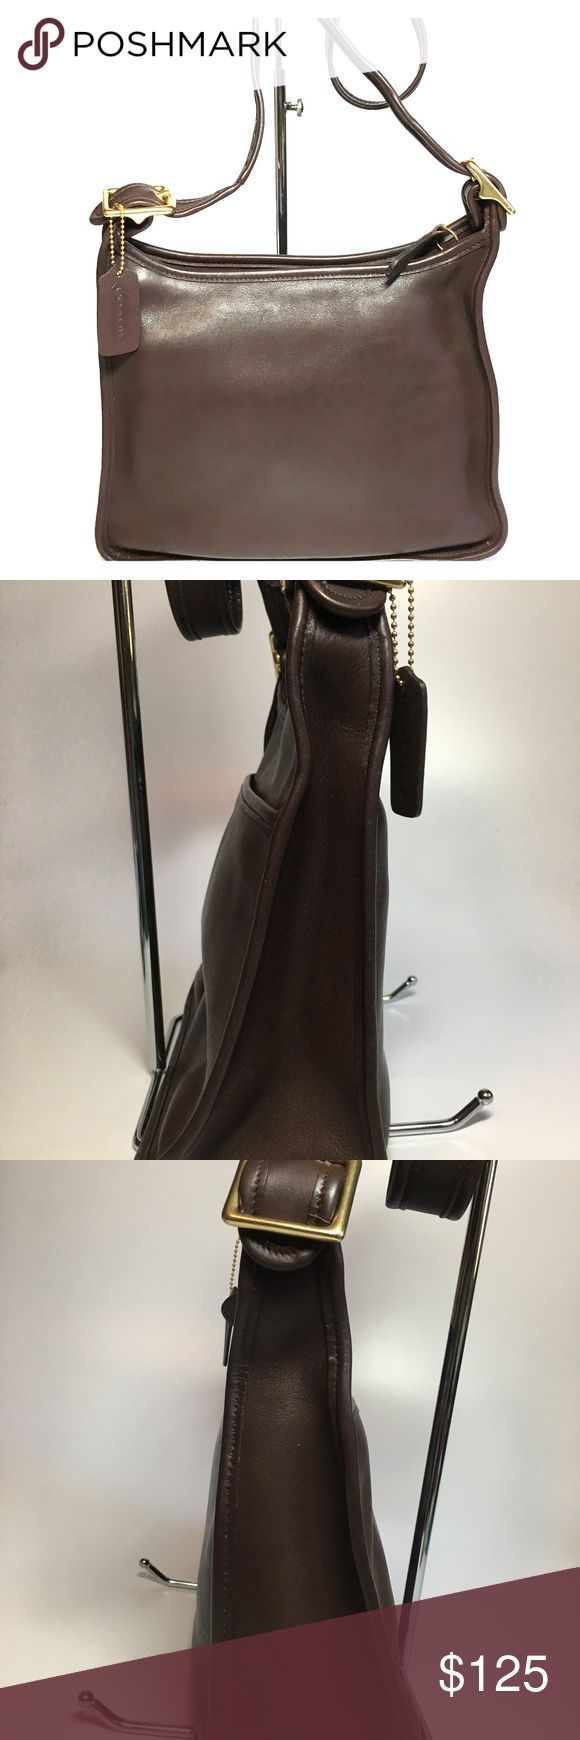 """COACH Legacy Zip Leather Crossbody Handbag 9966 100% Authentic COACH Legacy Zip Leather Handbag #9966 Color: Mahogany / Brass Size: 10 3/4"""" (L) x 9"""" (H) x 3 1/2"""" (D) Drop: 13-19"""" adjustable Made in USA Features: -In nice shape structure -In rich mahogany leather -Zipper closure -Full size exterior slip pocket -Interior with 3 small slip in pockets & 1 zipper pocket -Brass hardware -Four Brass Feet -Adjustable shoulder strap -Comes with COACH dust bag Interior: Interior is clean, no marks…"""